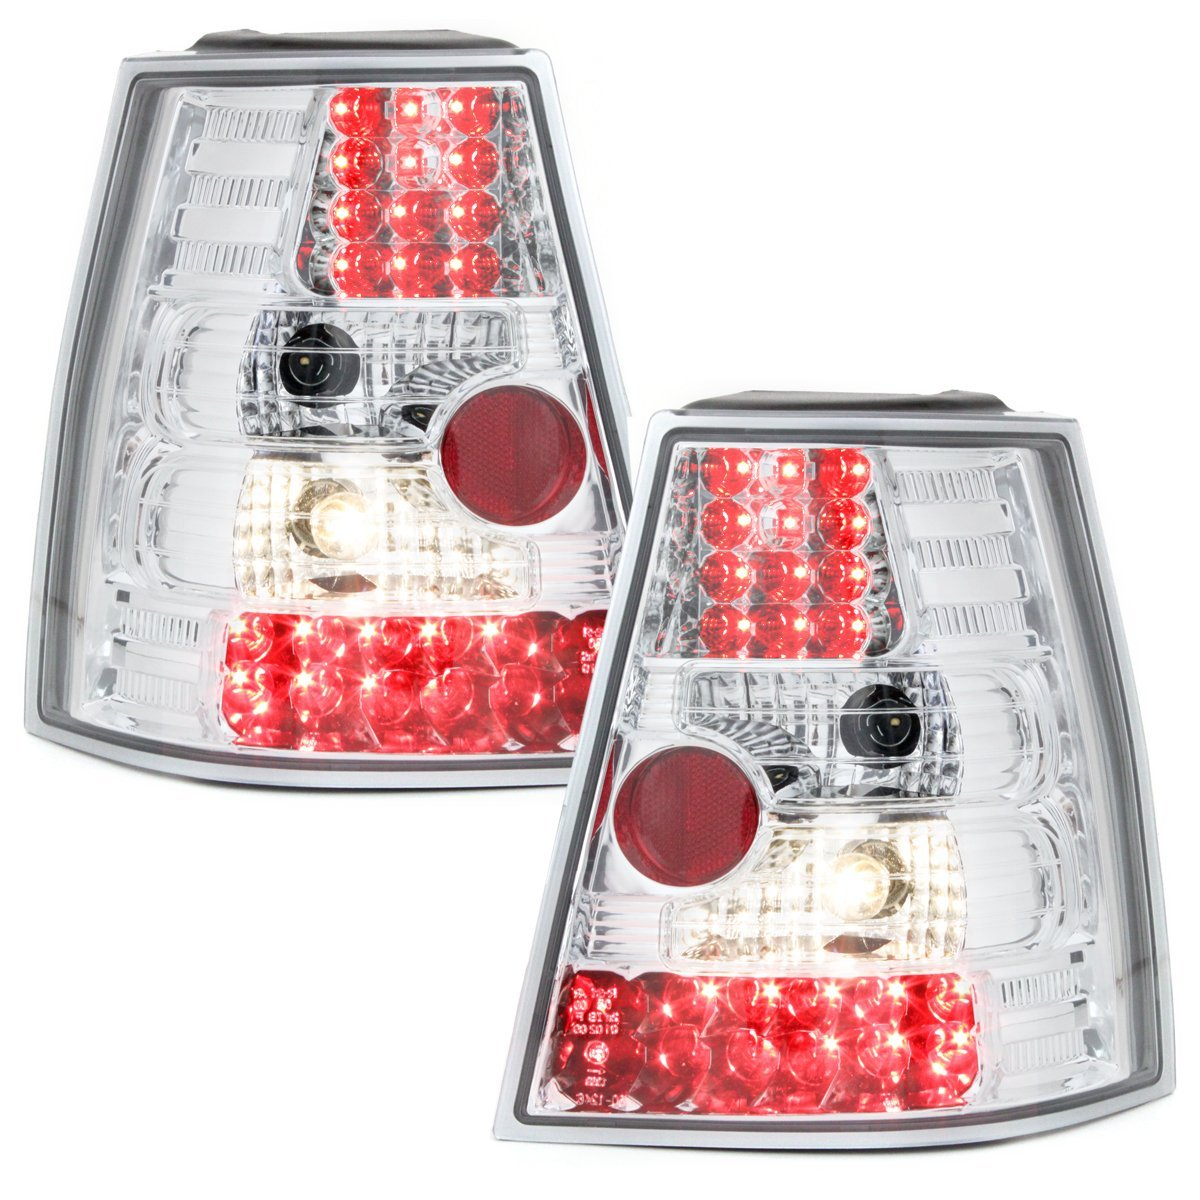 -STOPURI LED VW GOLF 4/BORA VARIANT FUNDAL CROM -COD RV31LLC